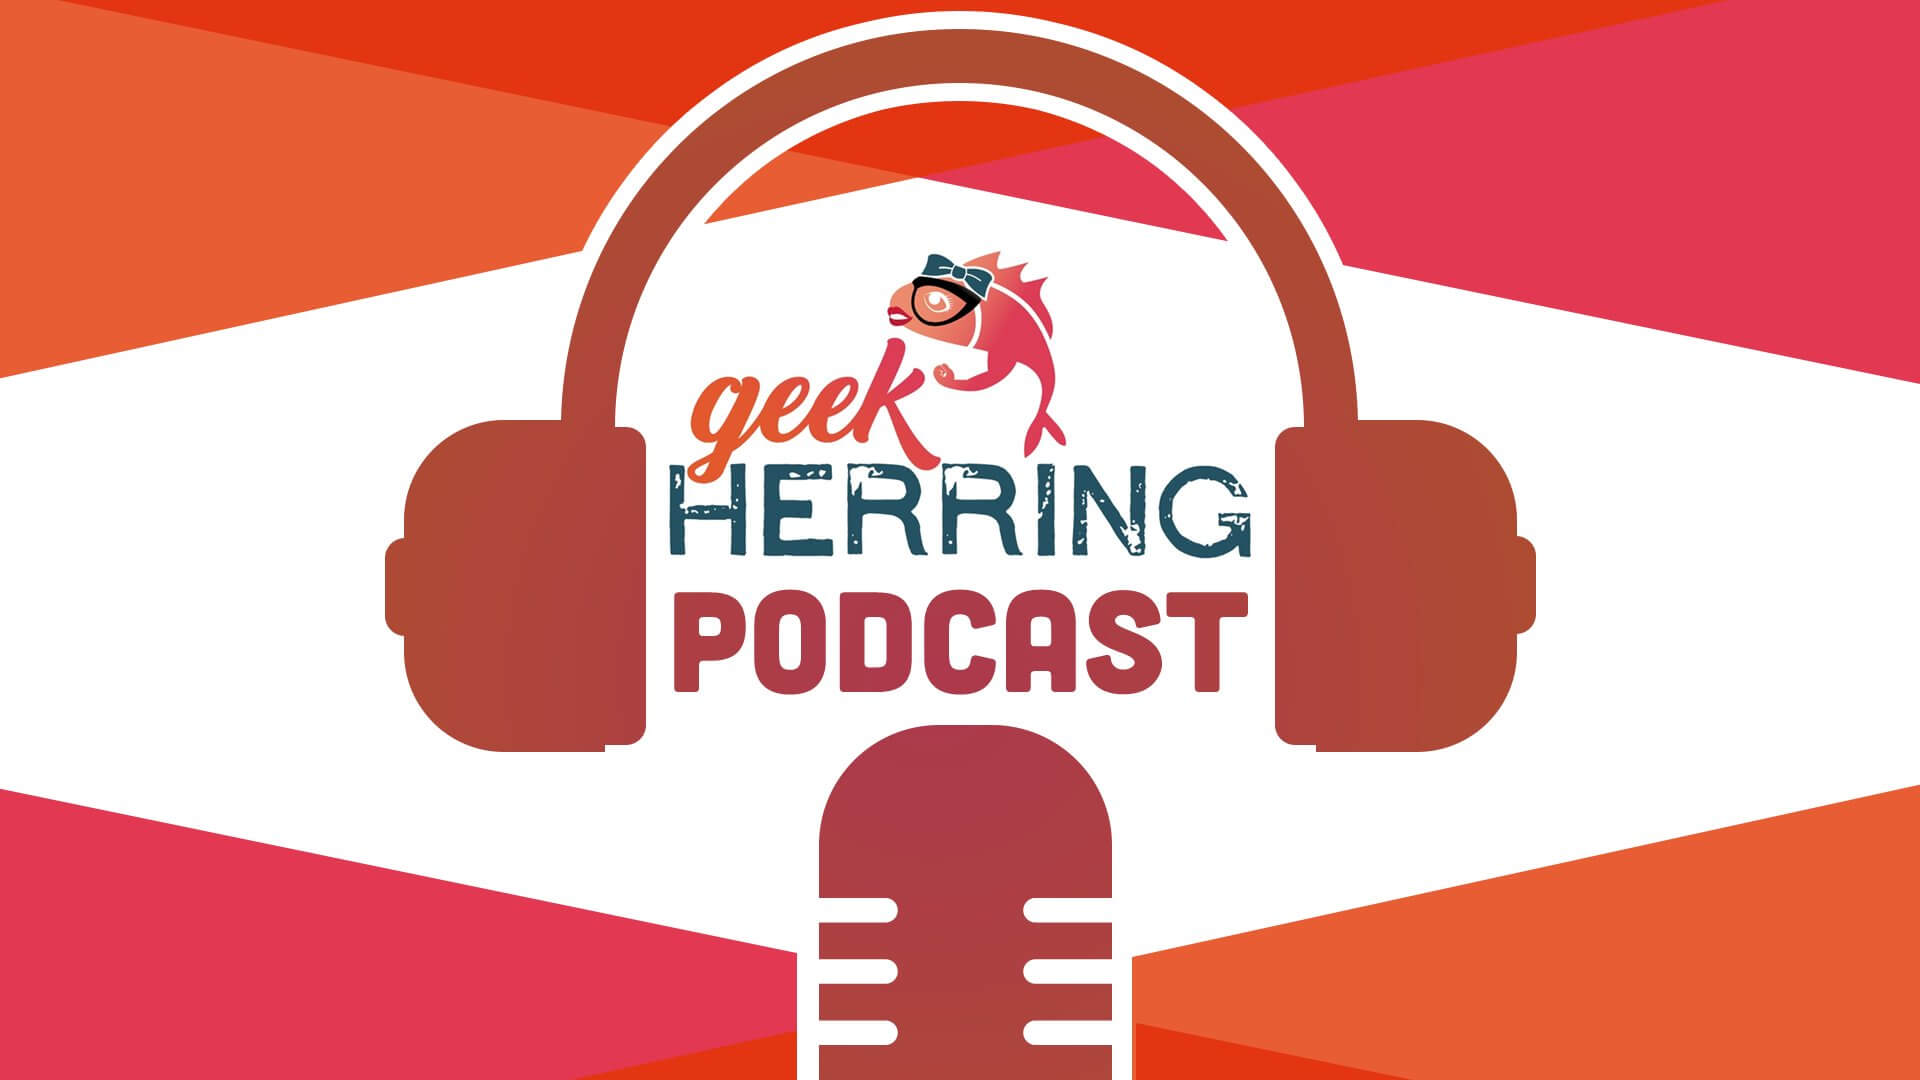 Geek Herring, Podcast with Genese Davis and Seb Le Touze